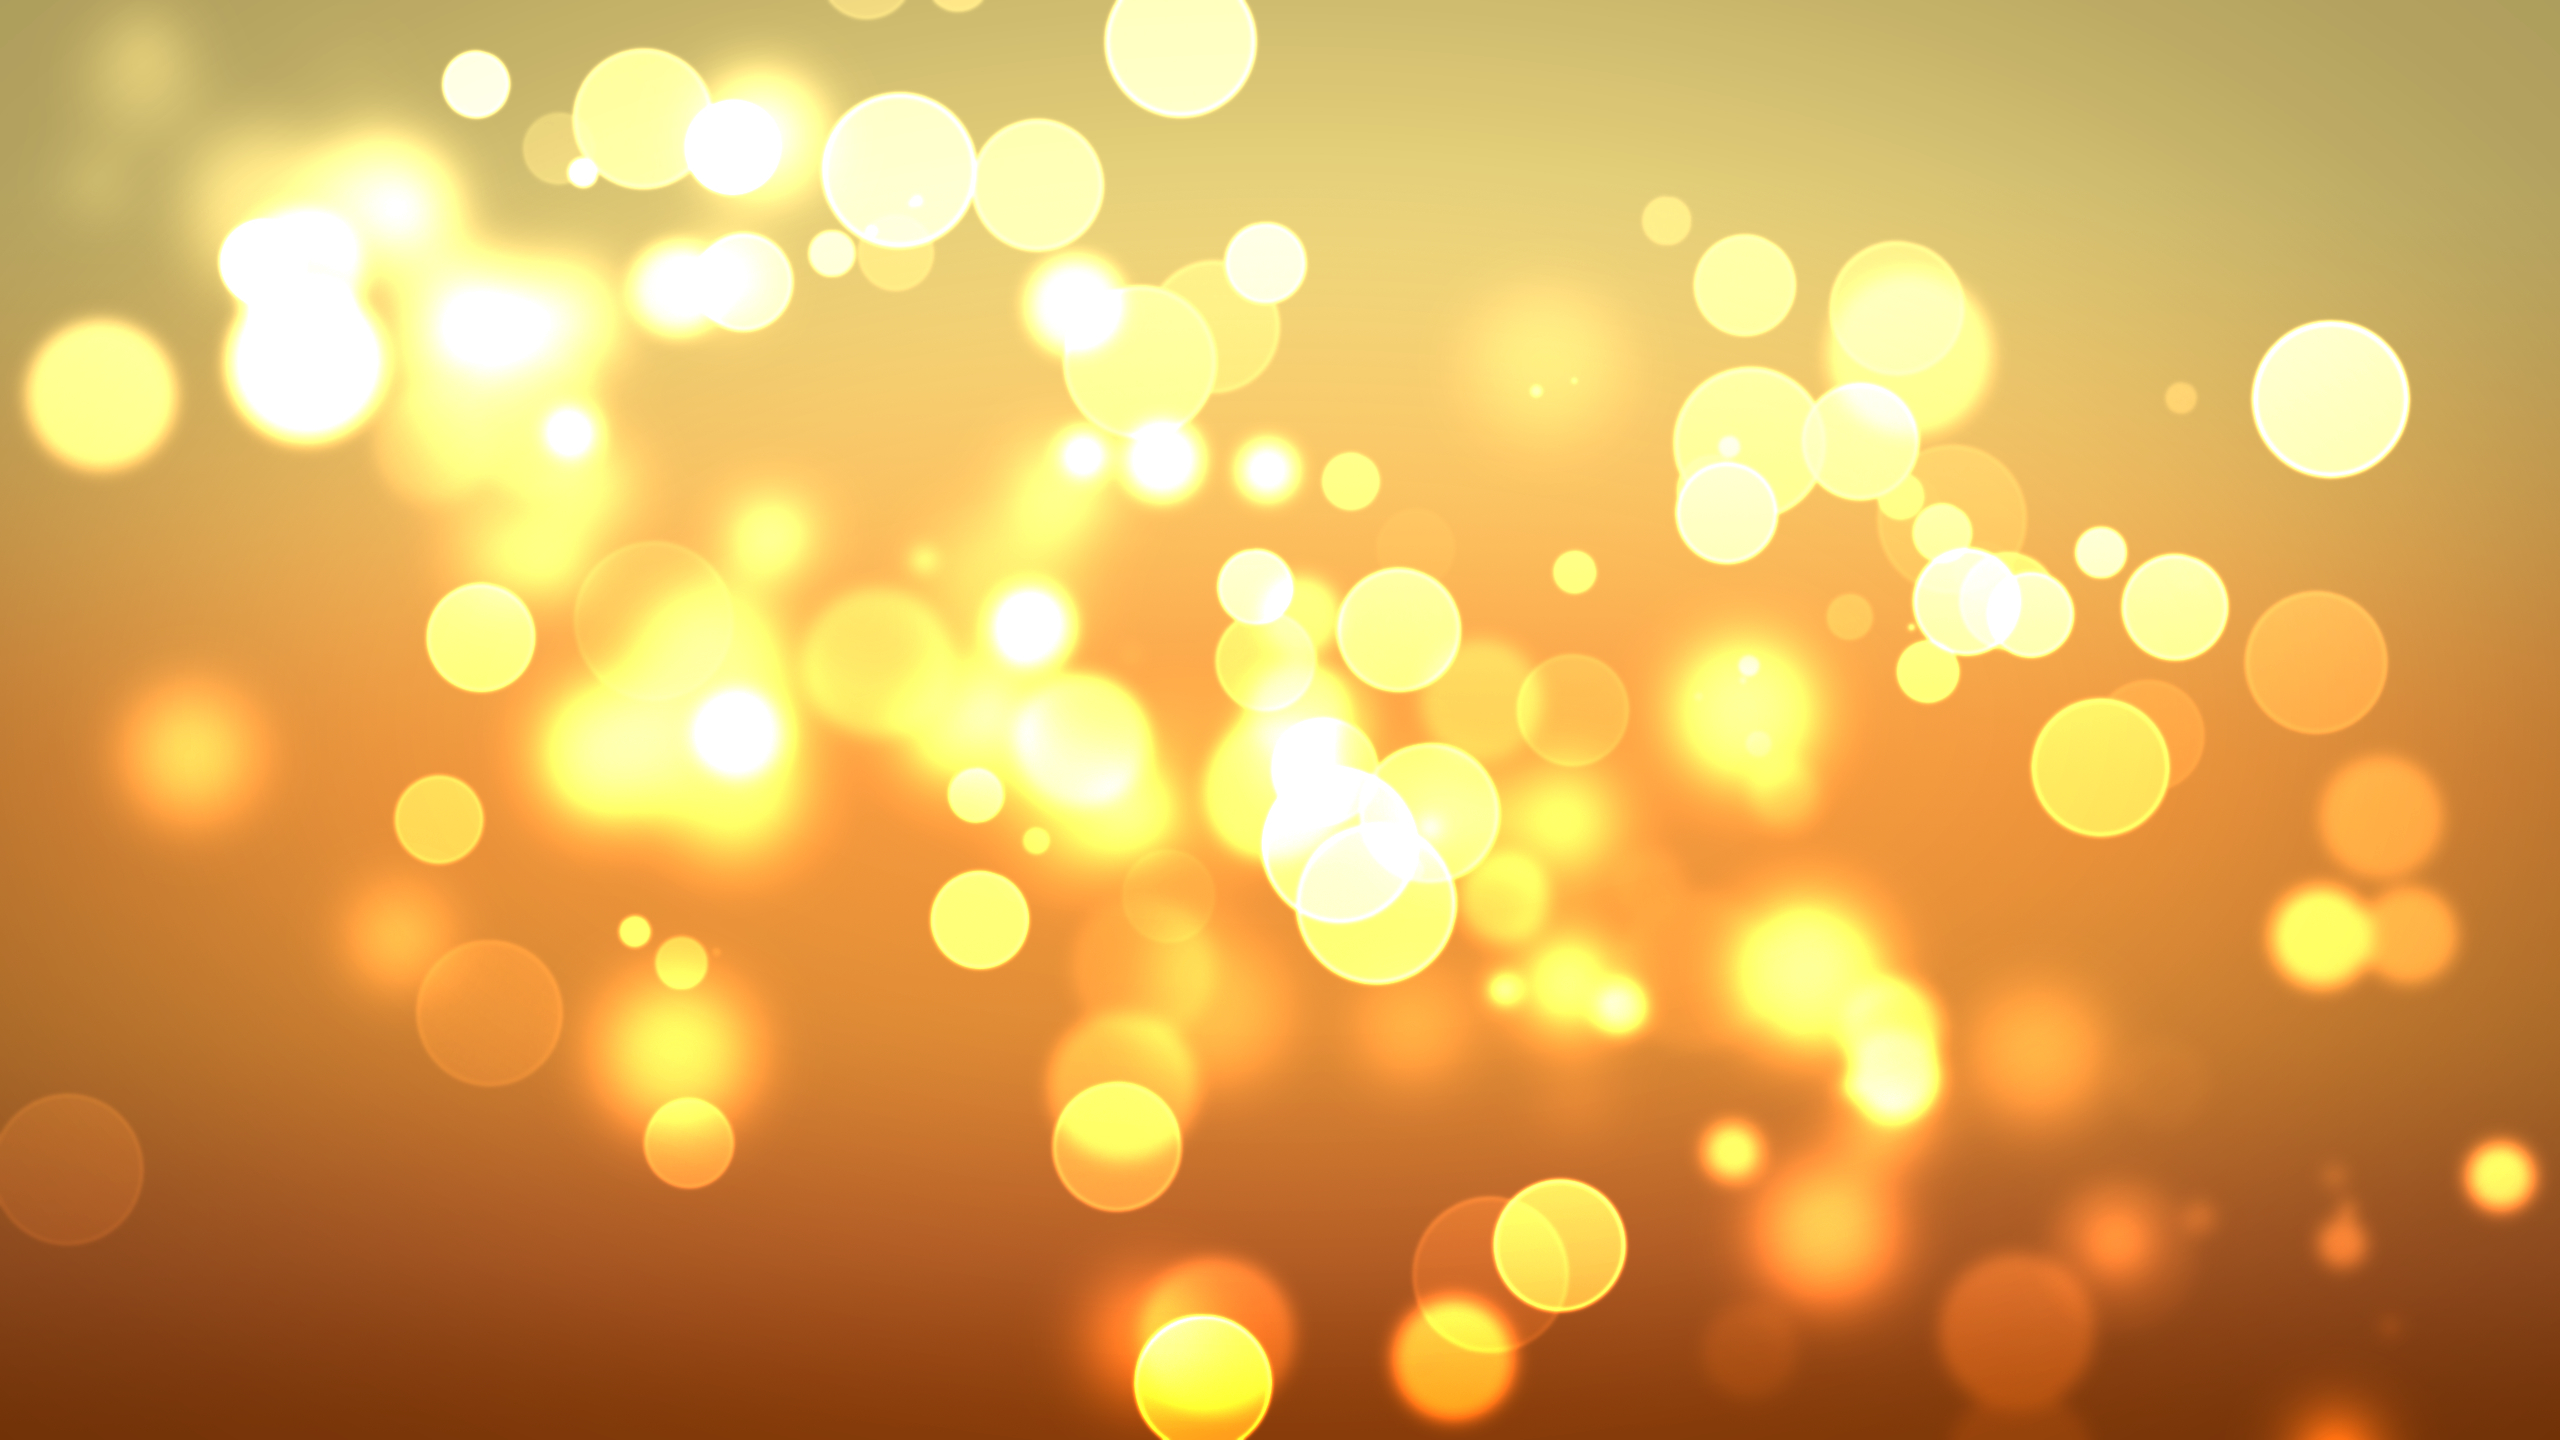 gold best widescreen abstract HD Wallpaper